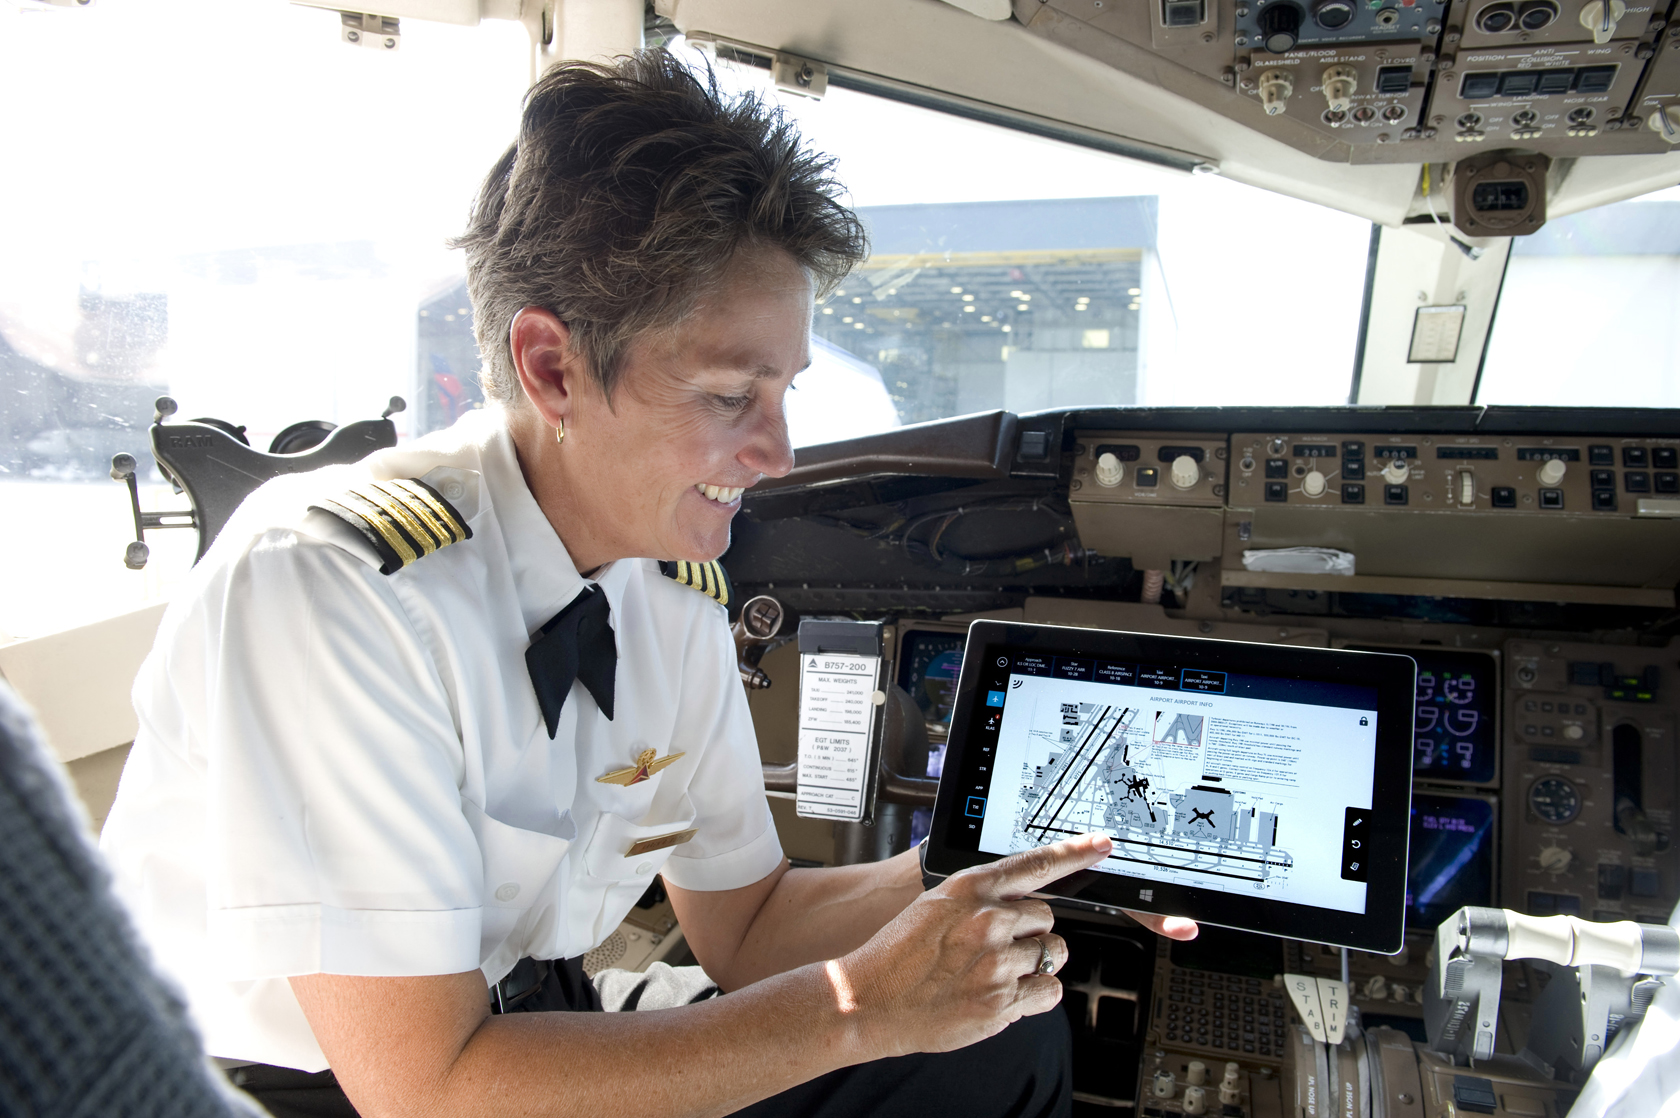 Delta to Equip Its 11,000 Pilots With Microsoft Surface 2 Tablets